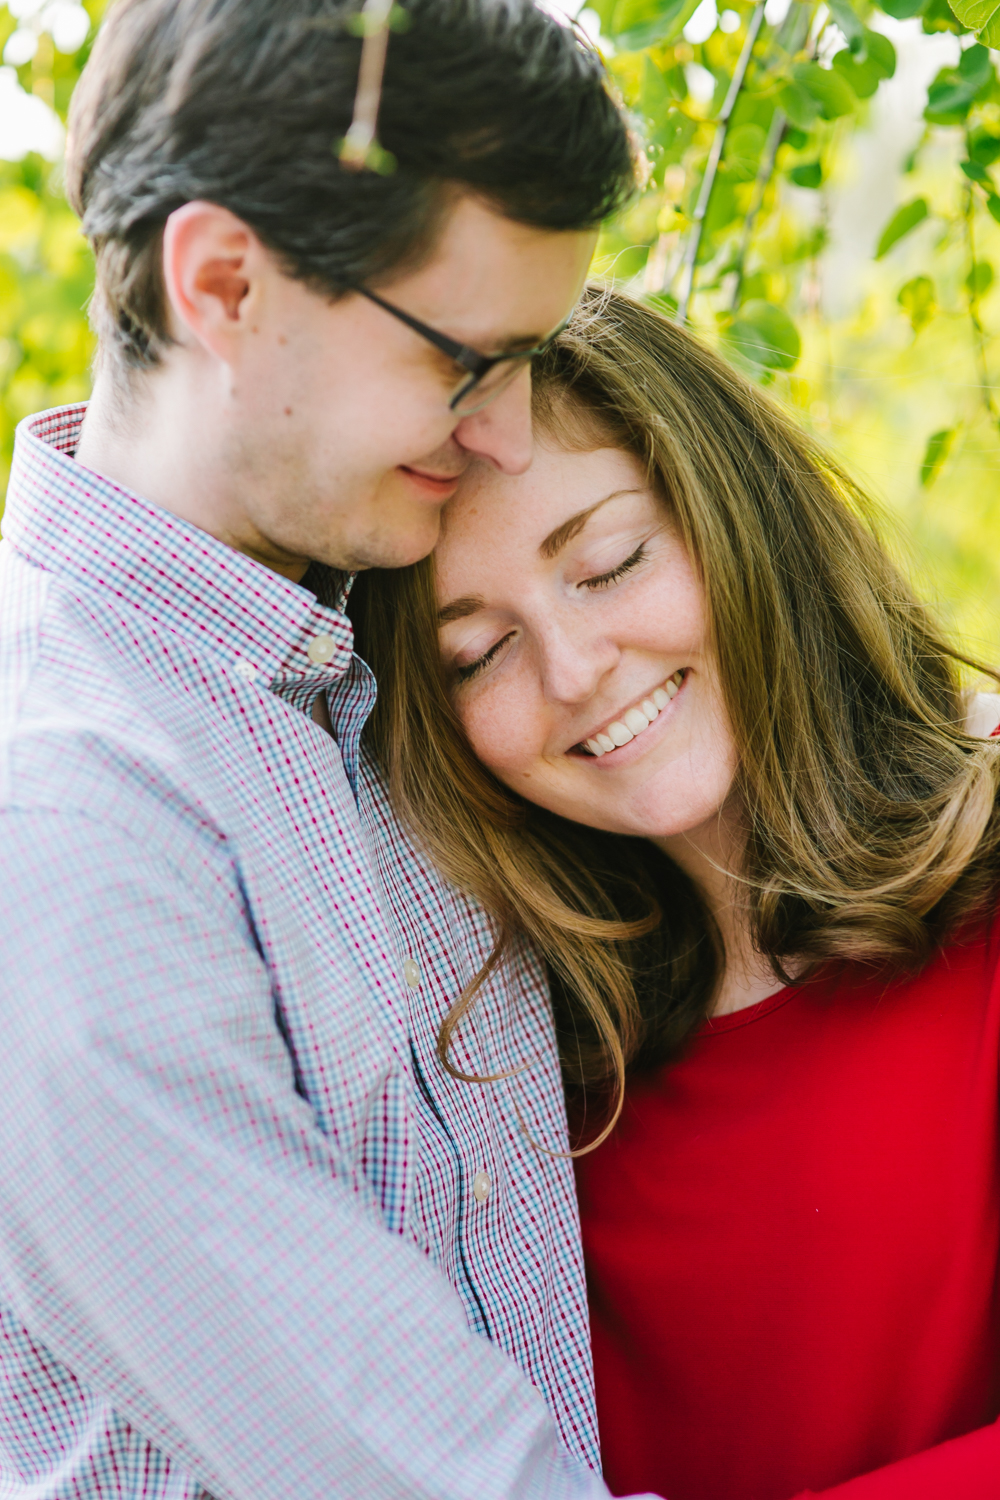 Emily Tebbetts Photography - Boston Jamaica Plain Arnold Arboretum Engagement Photos Wedding Photographer-10.jpg